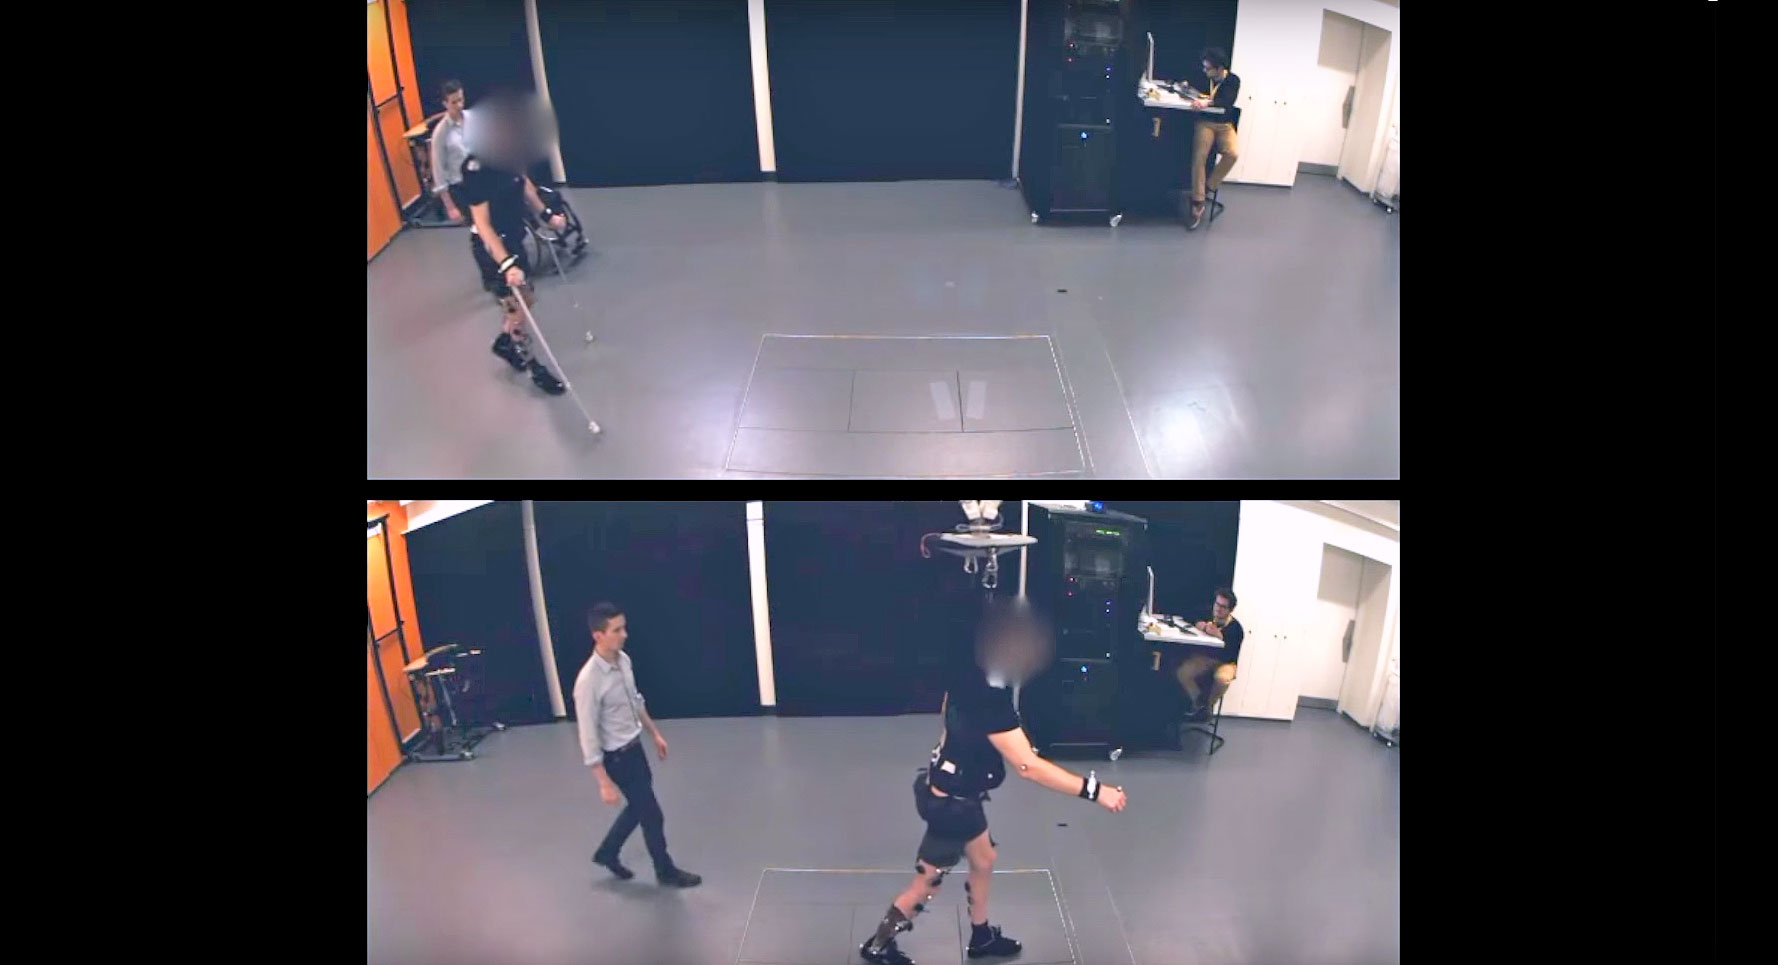 Smart harness can help stroke victims learn to walk again